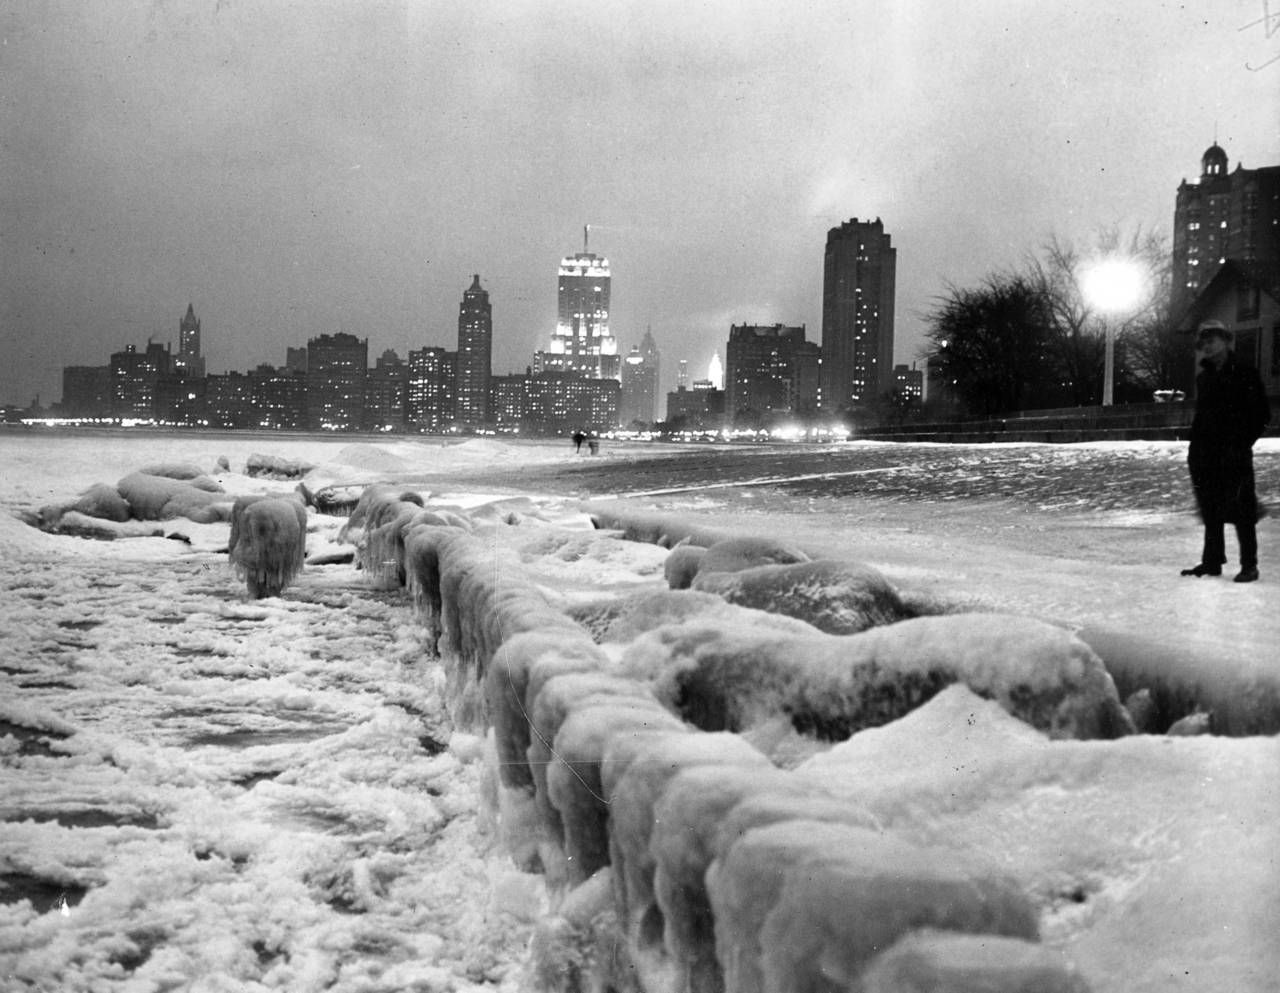 Looking south from North Avenue on the shore of Lake Michigan, the ice provides evidence of the cold weather. Temperatures dropped to 10 abo...